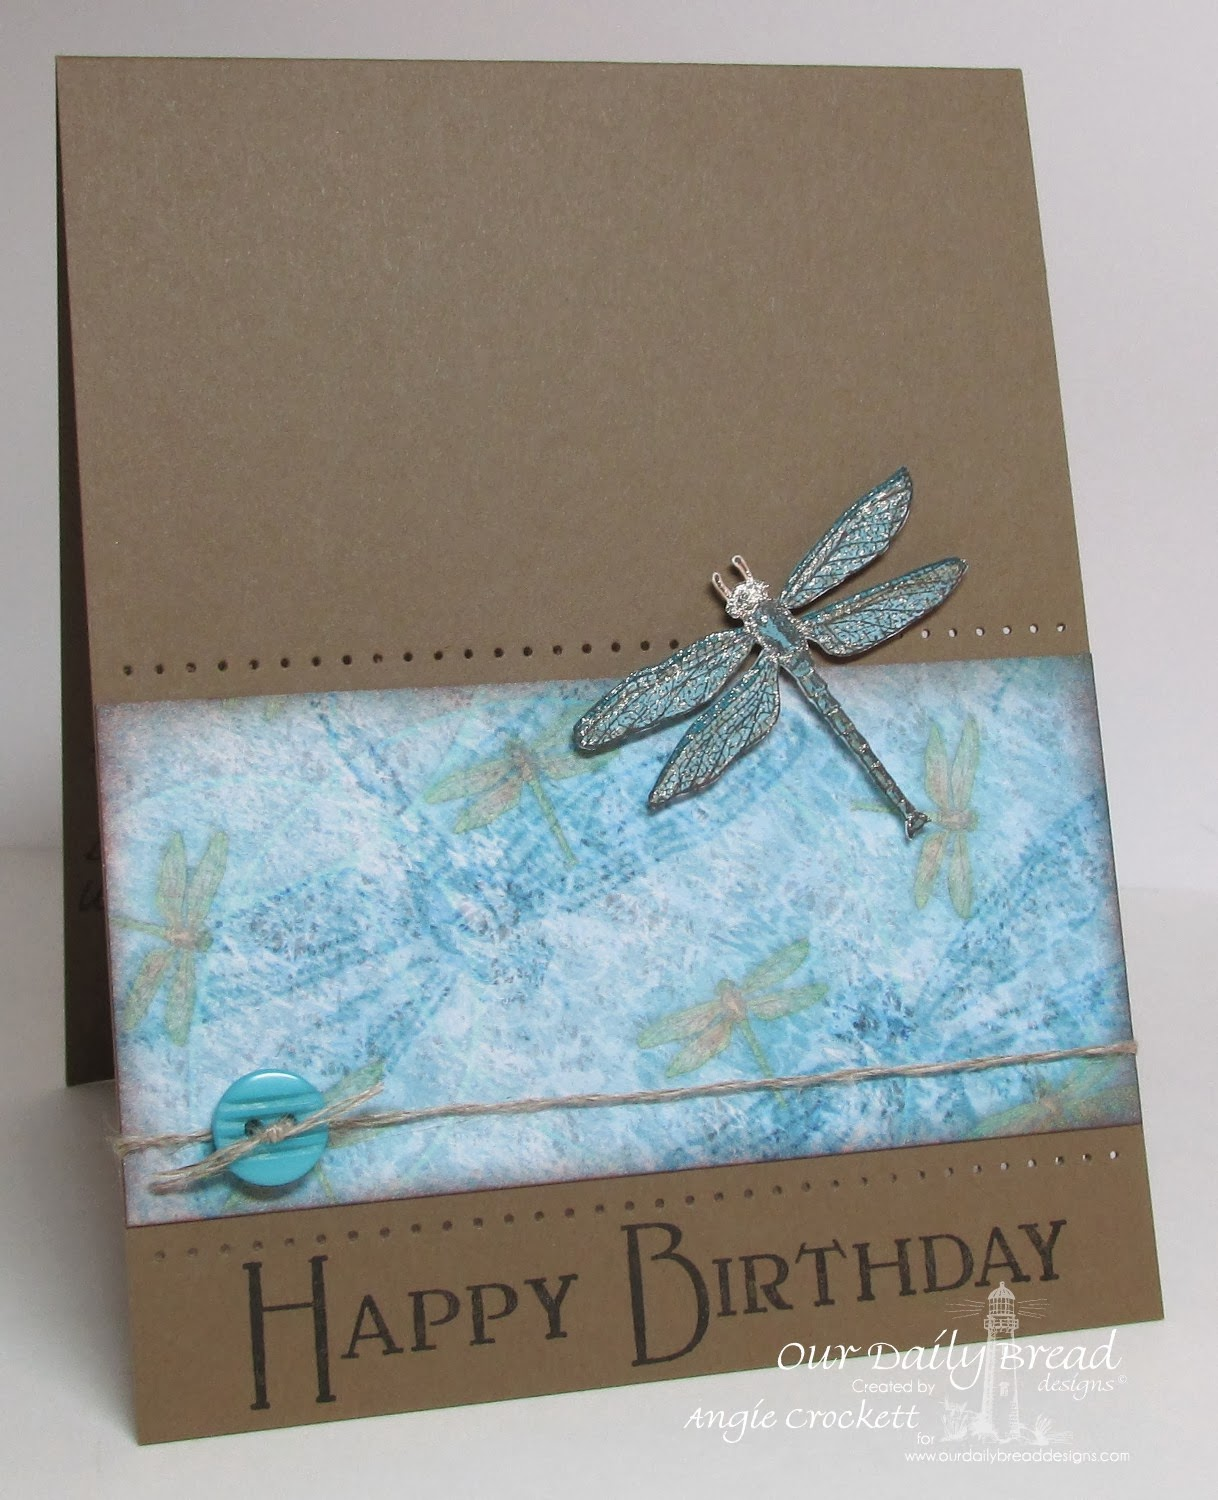 ODBD Faithful Friend, Dad, Blooming Garden Collection Designer Paper, Card Designer Angie Crockett